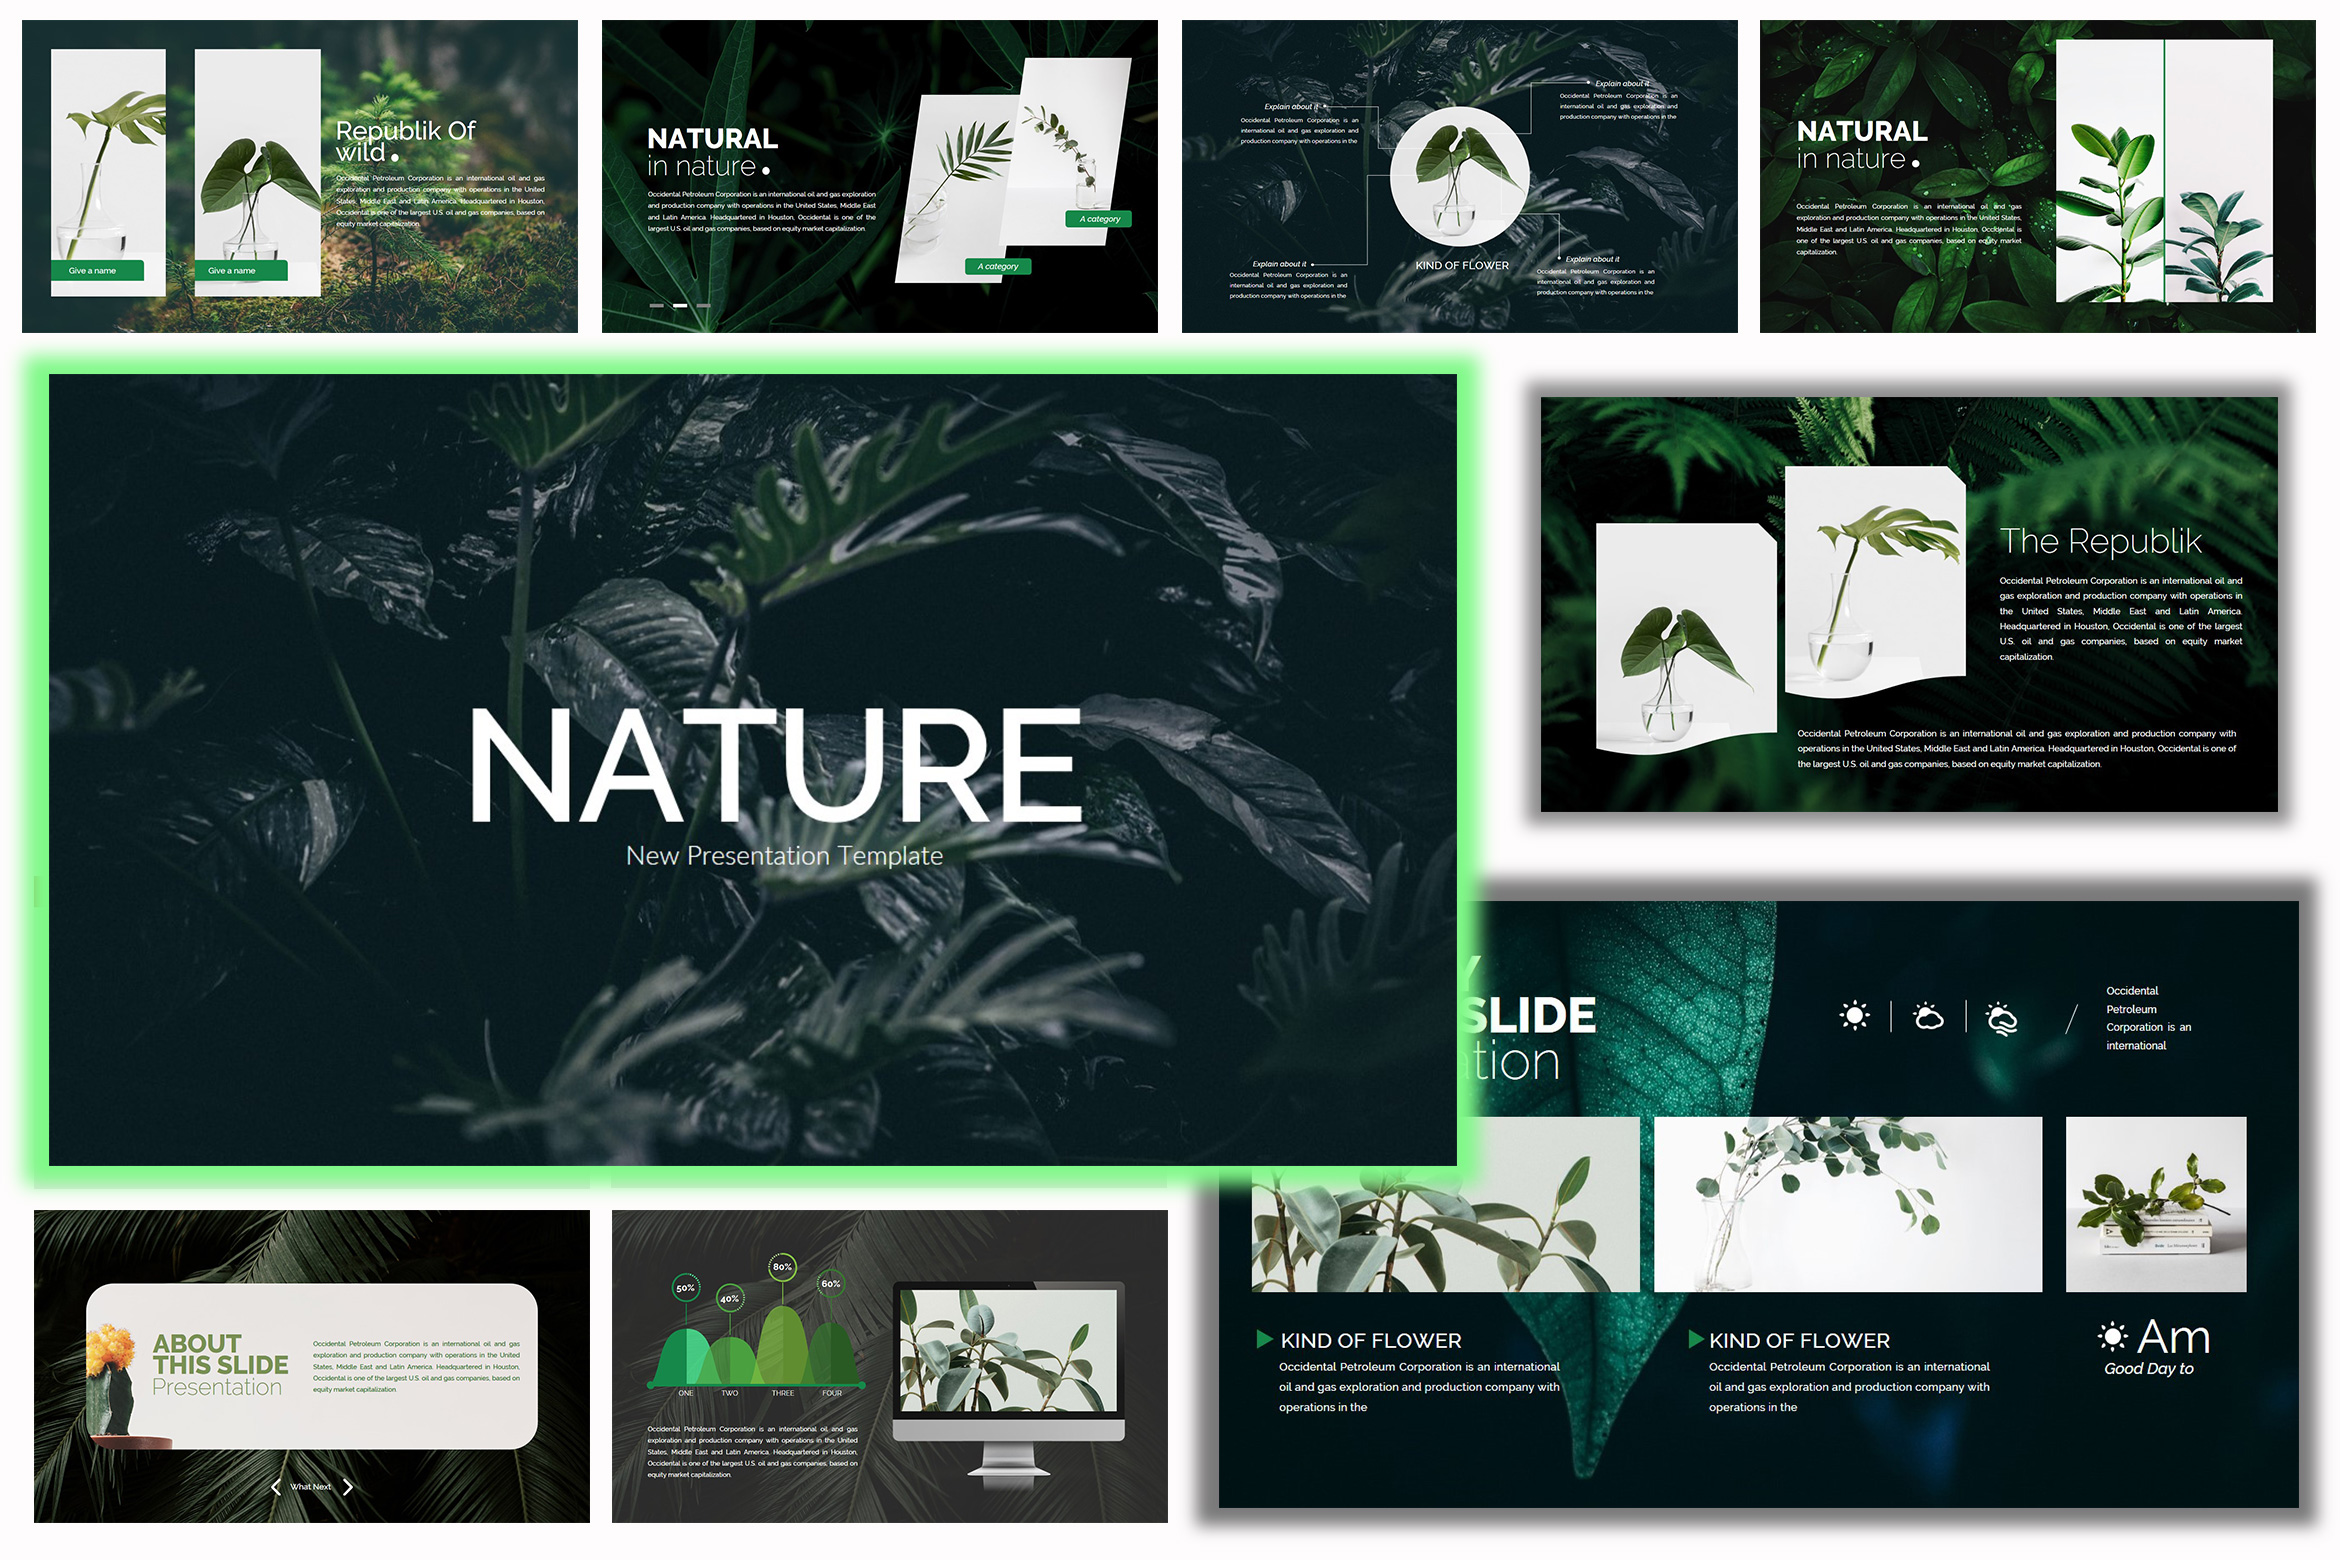 Nature - Google Slides Presentation example image 8